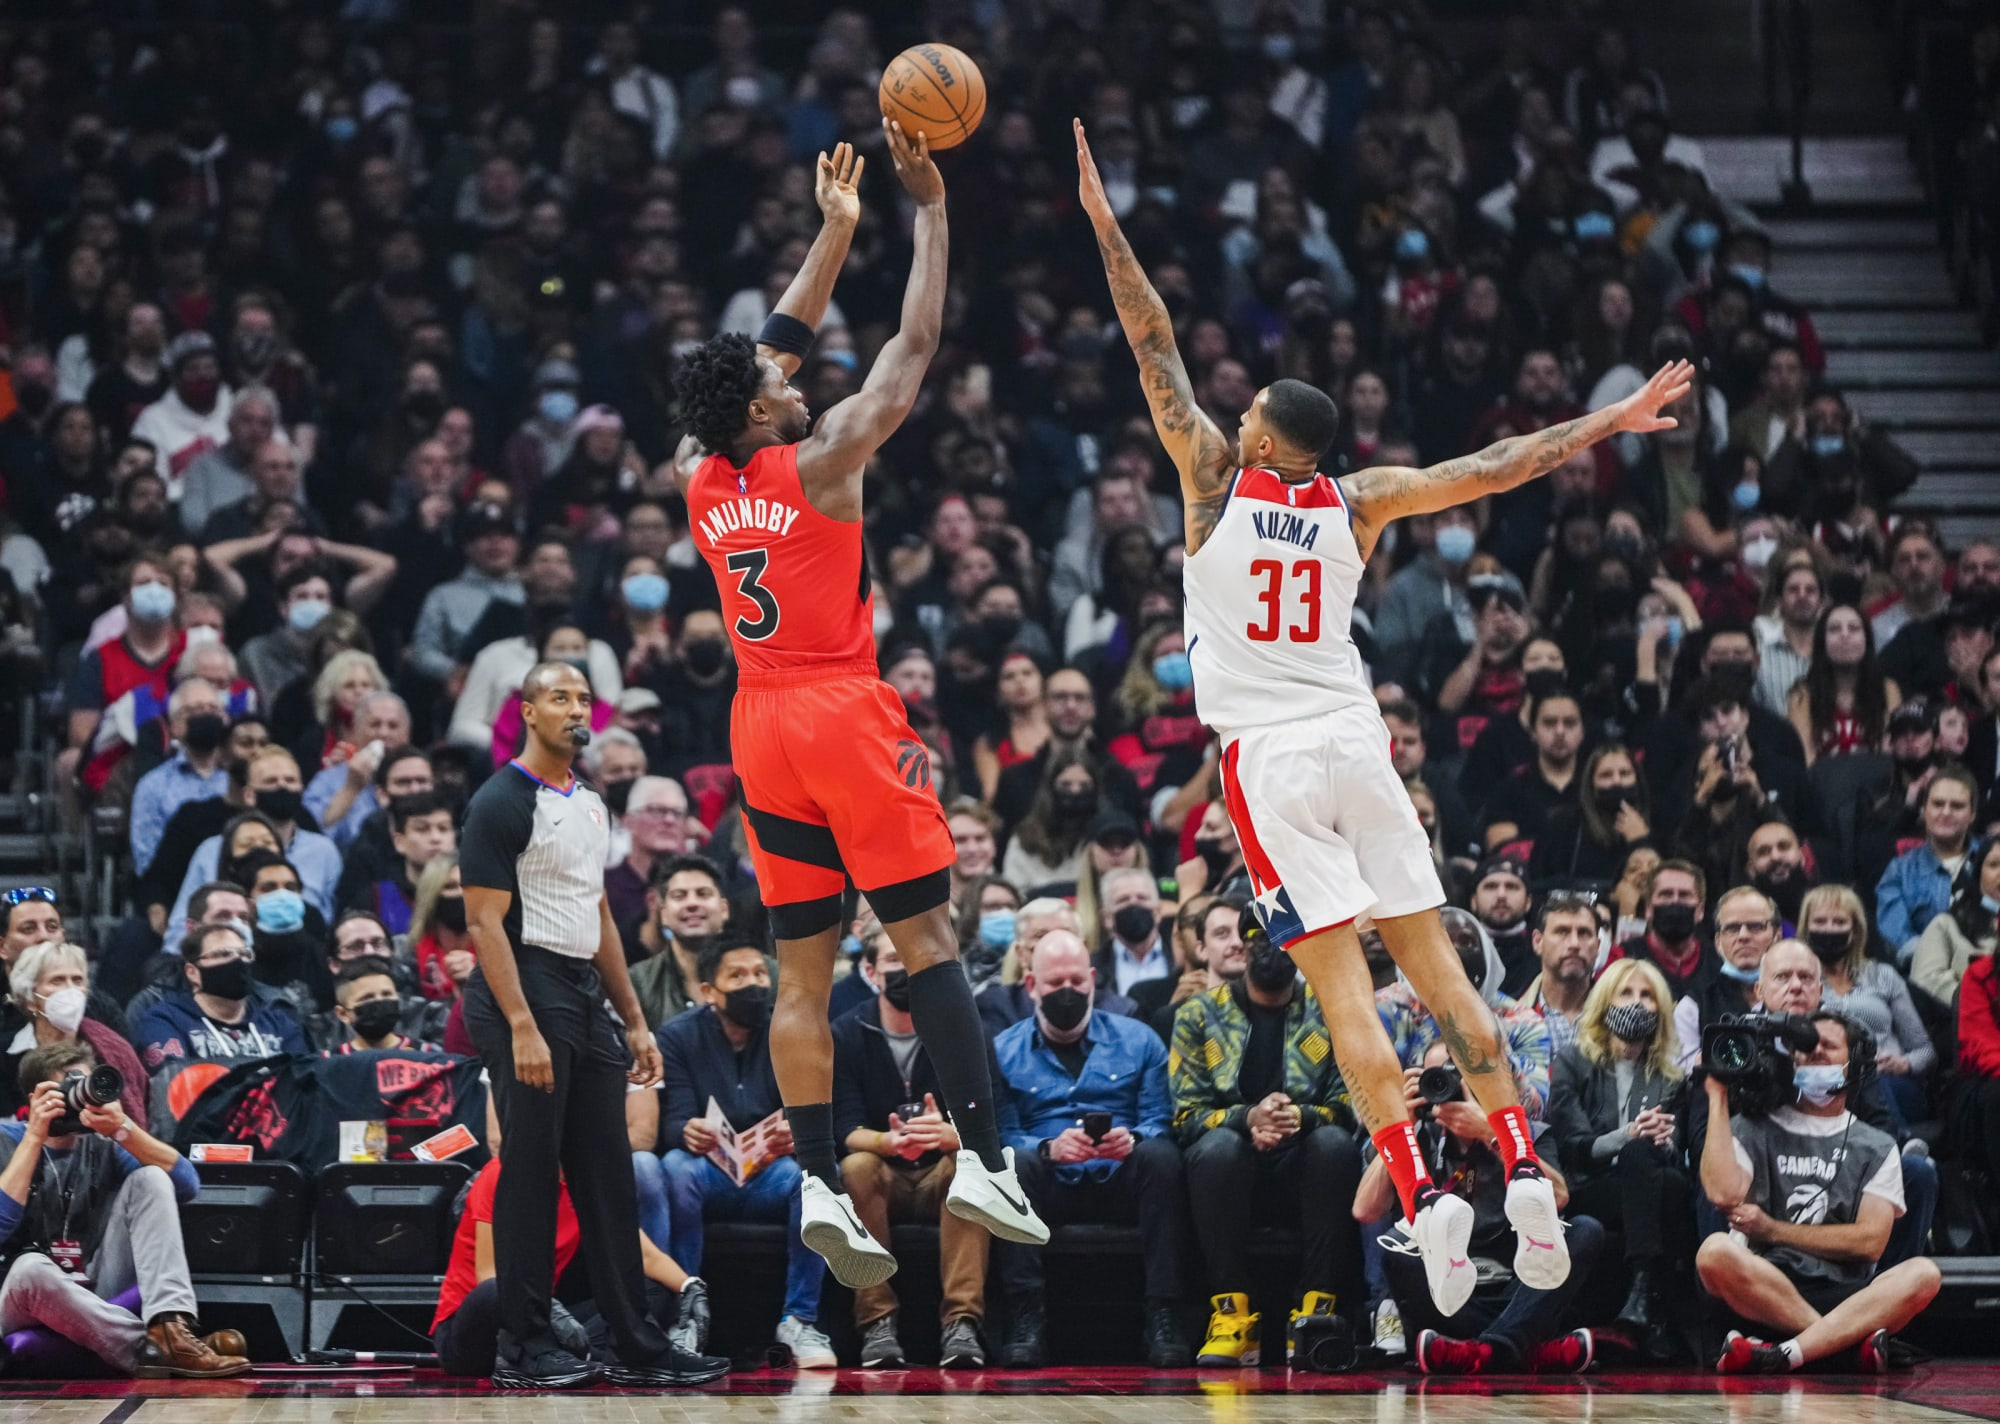 Toronto Raptors: Postgame grades after dreadful loss to Wizards